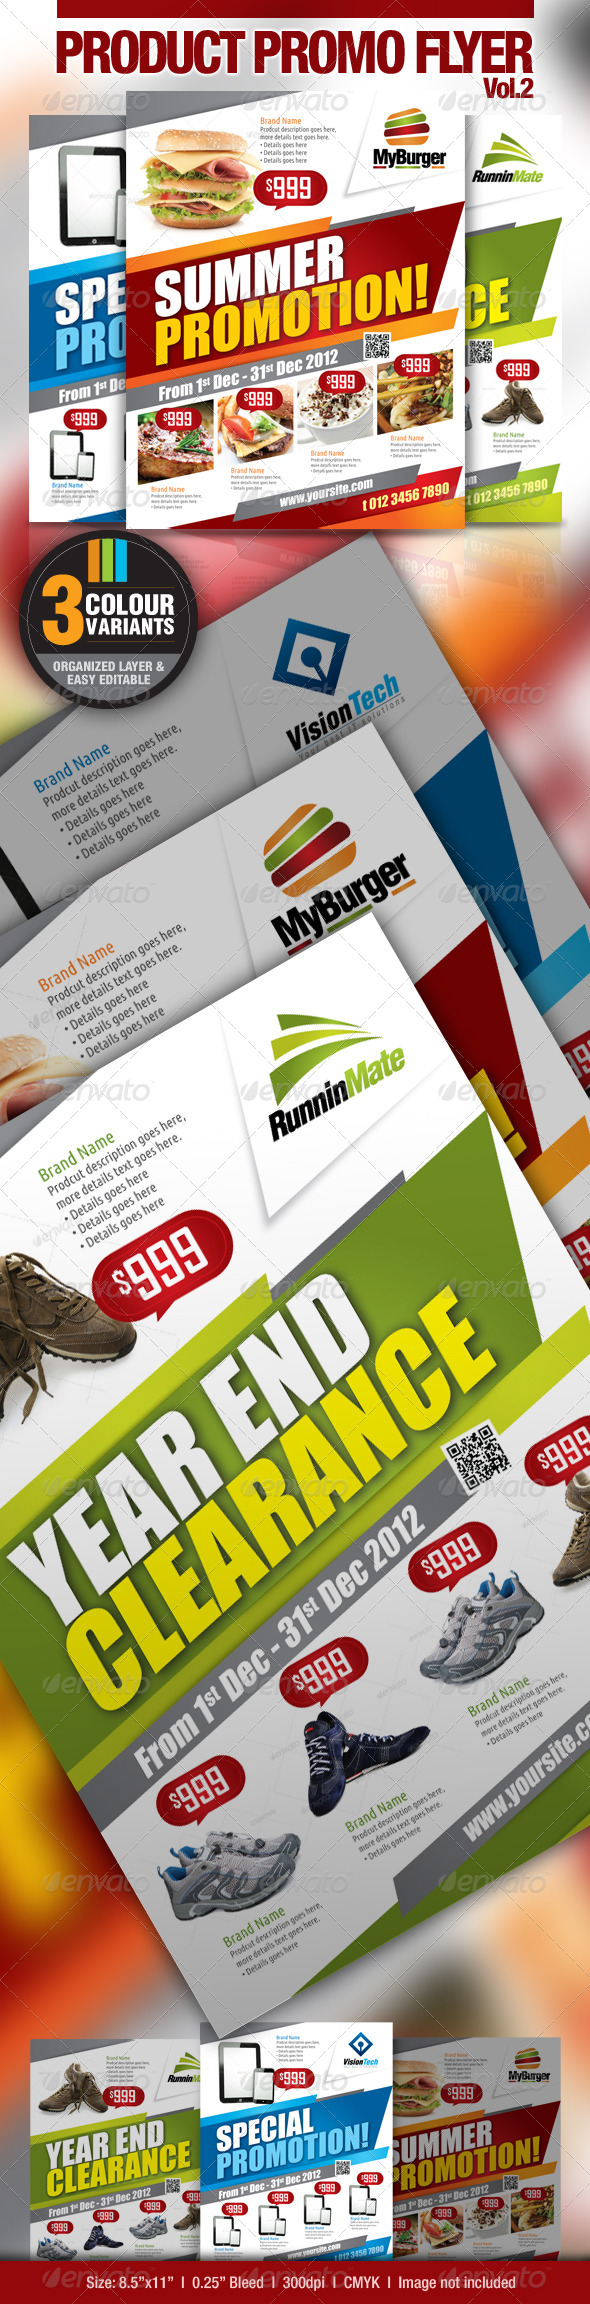 Multi-Purpose Product Promotion Flyer - Commerce Flyers